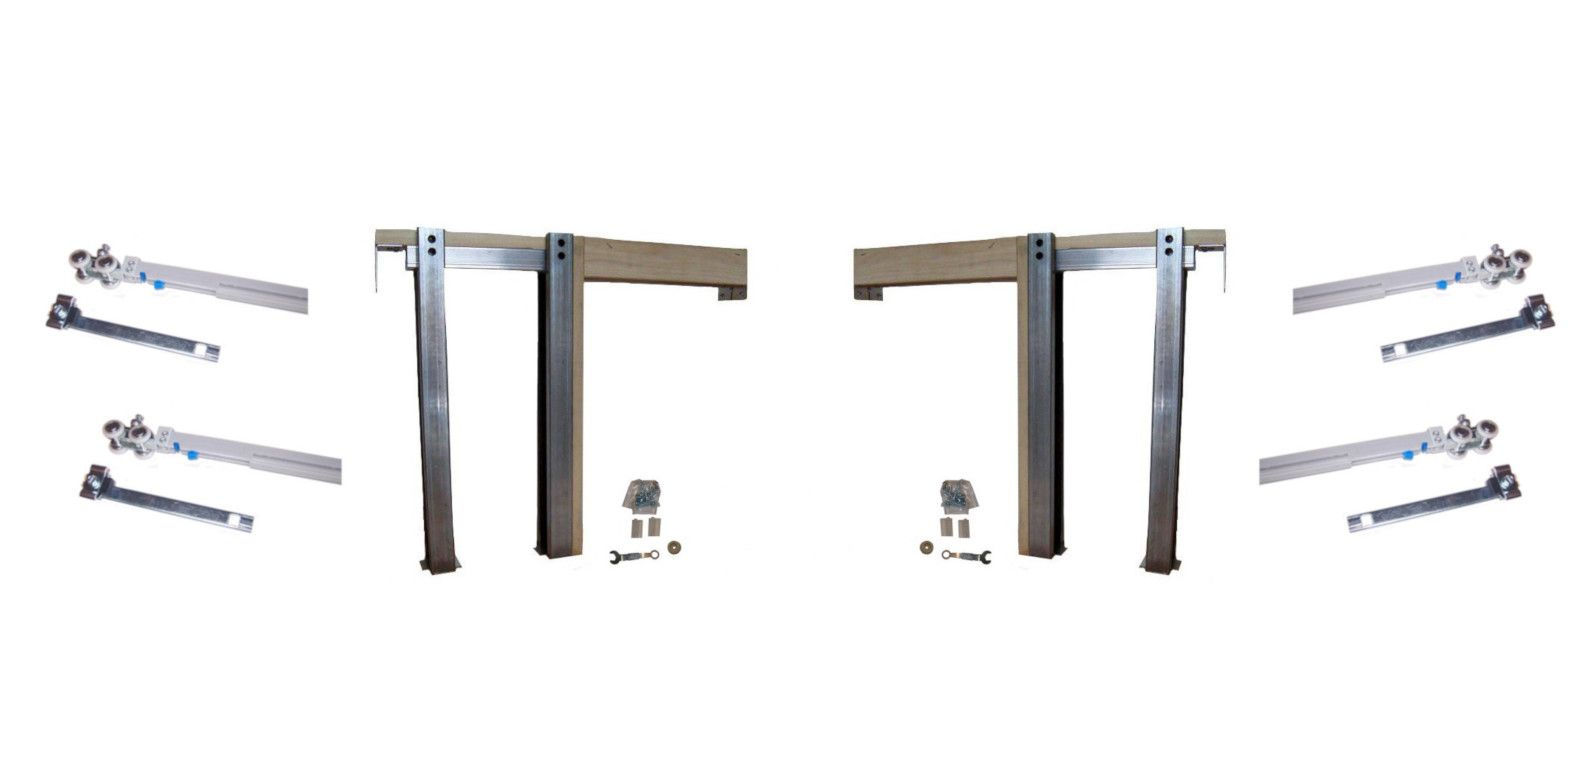 2450 Series Double Pocket Door Frame Kit With Soft Close Soft Open Pocket Door Frame Double Pocket Door Pocket Doors